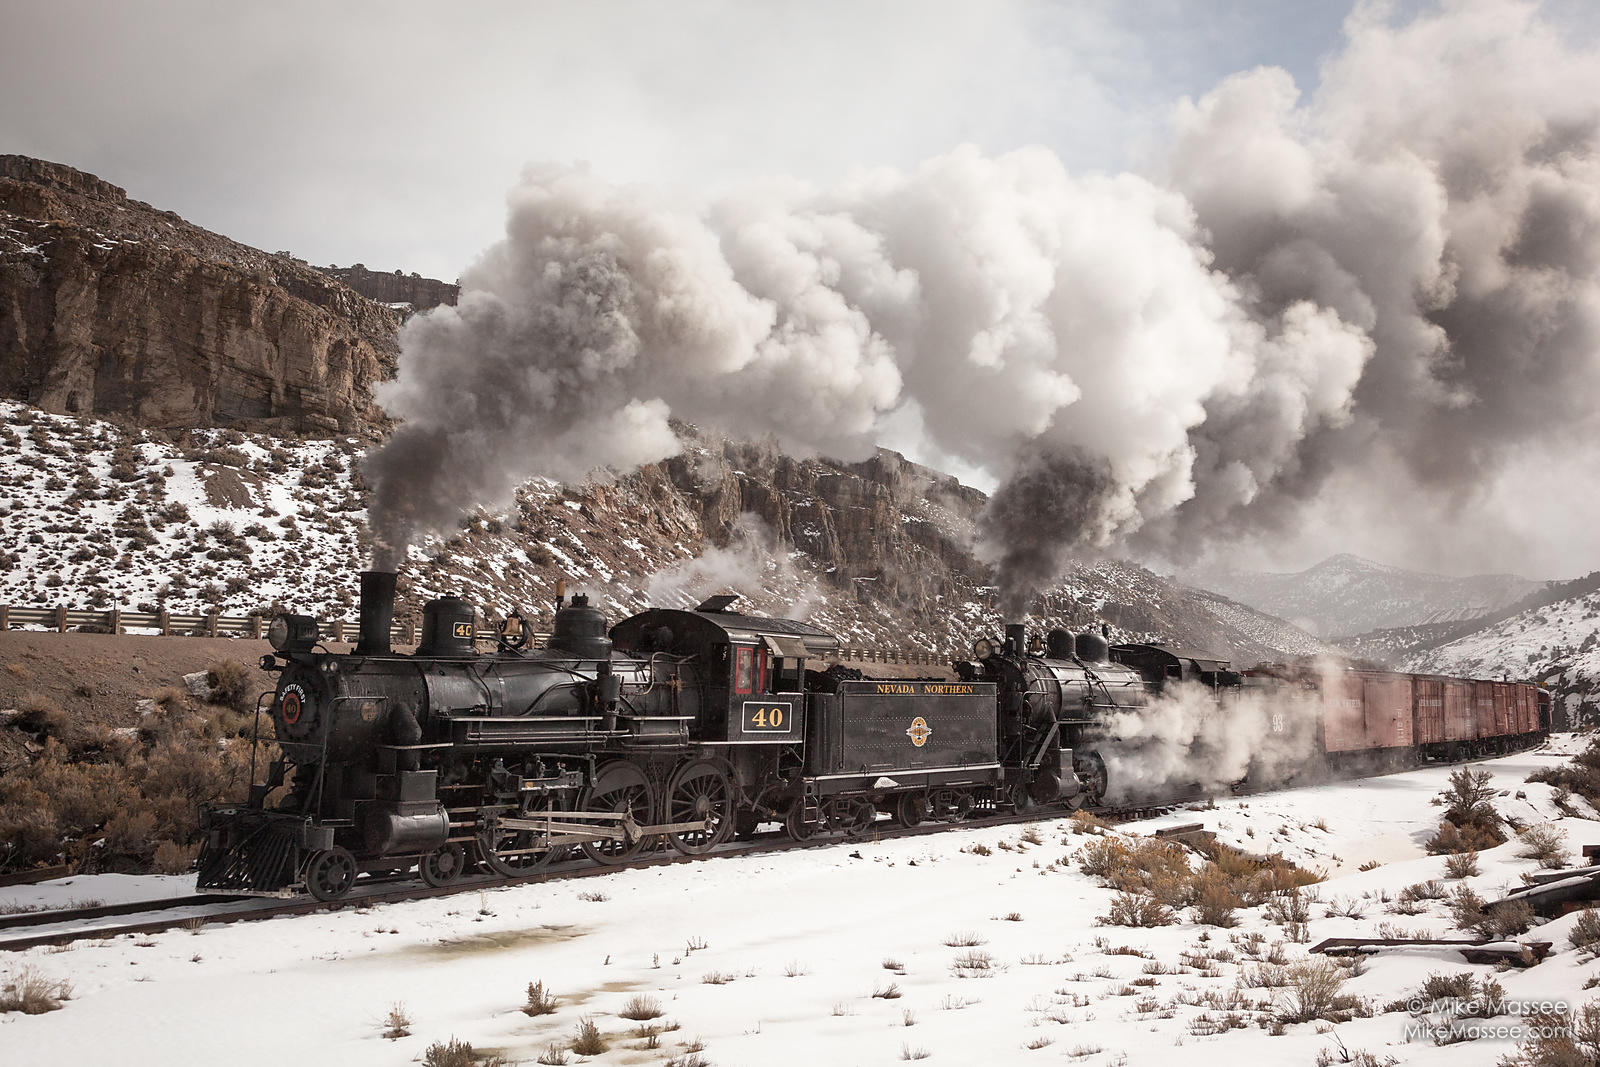 Nevada Northern Railway #40 and #93 double header